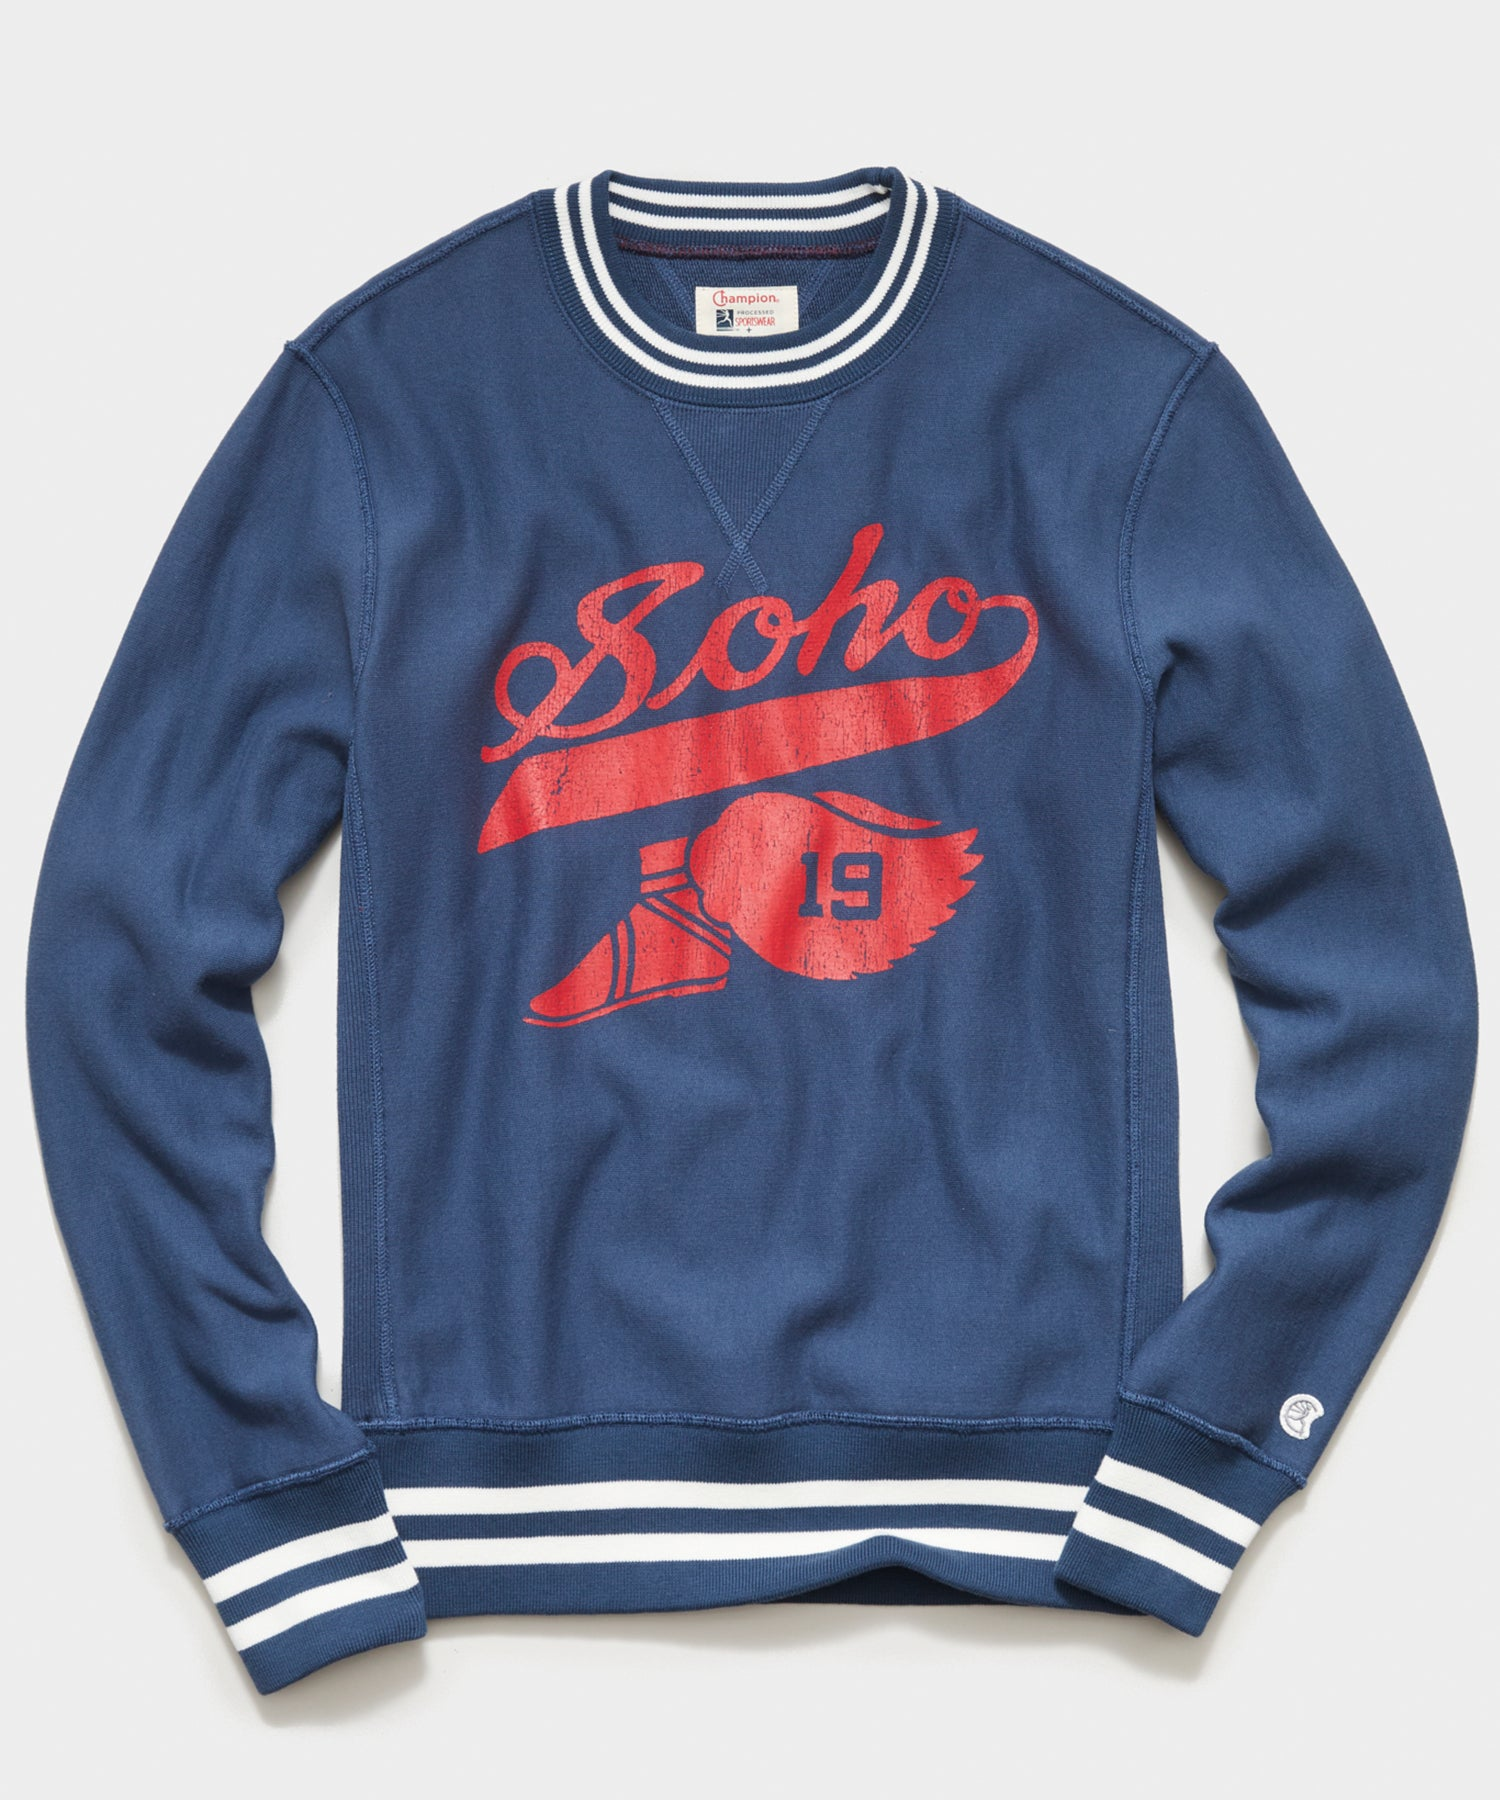 Champion Soho Sweatshirt in Navy Batik